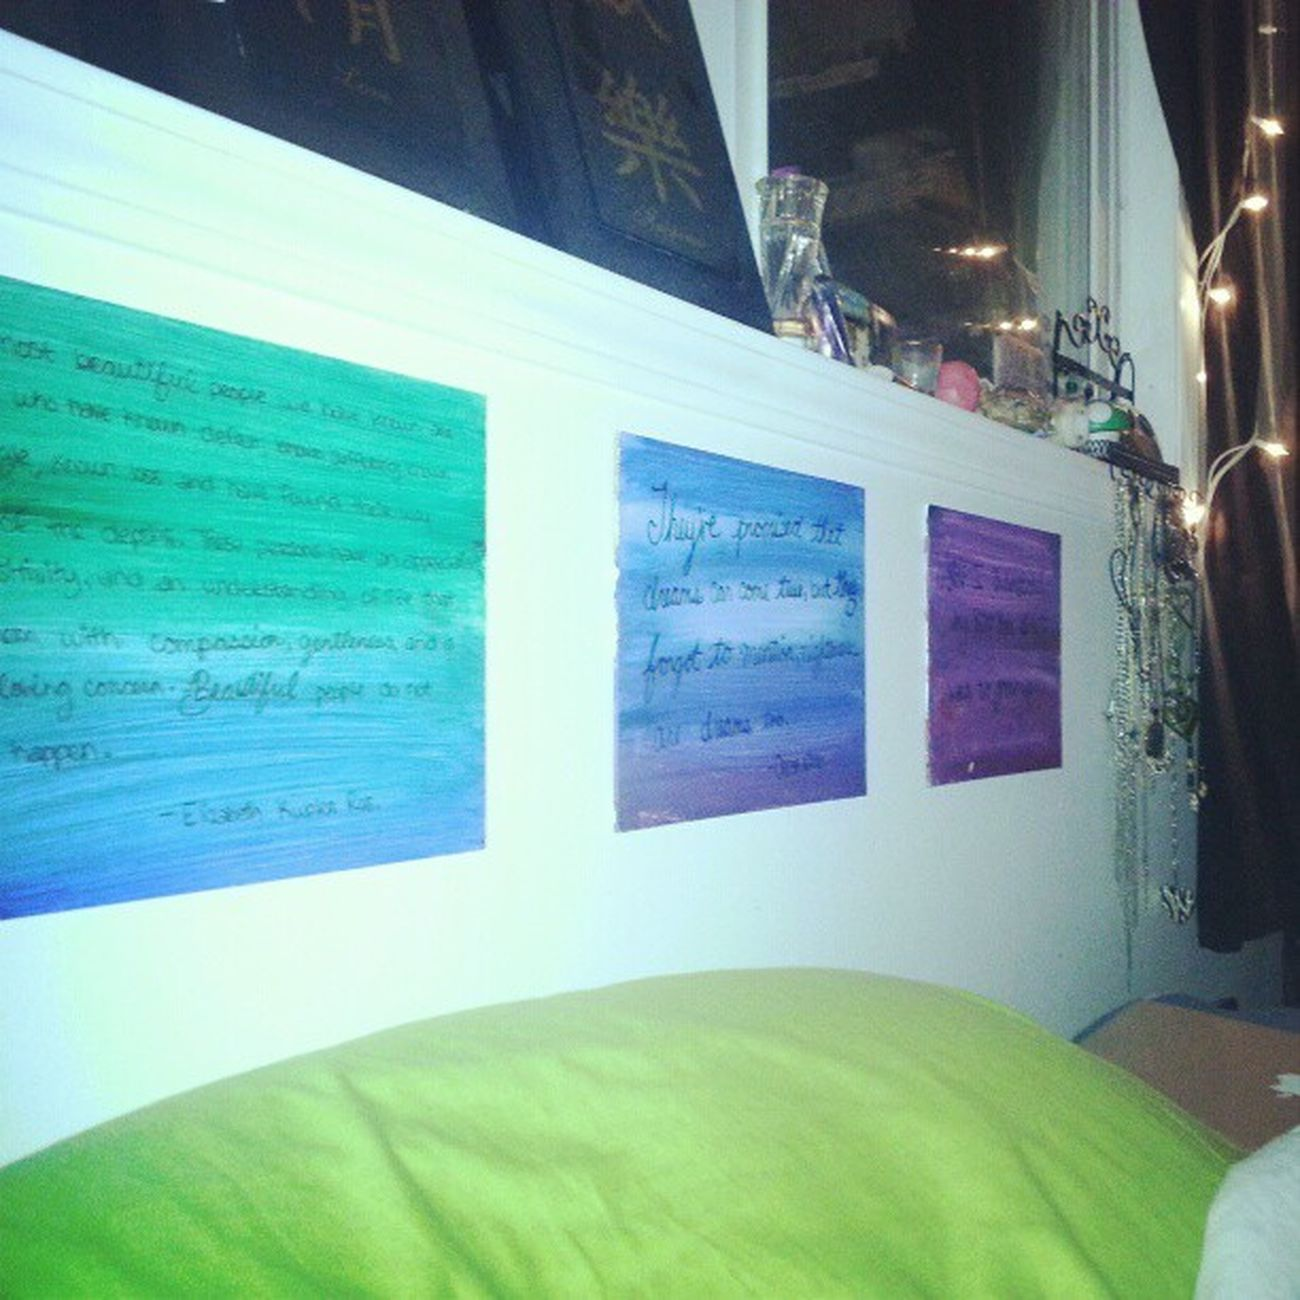 Newest art work. Art Acrylics Paint Blue green purple pink quotes peterpan oliverwilde elizabethkublerros bedroom whitewalls necklaces windowsill necklaces instagood instadaily